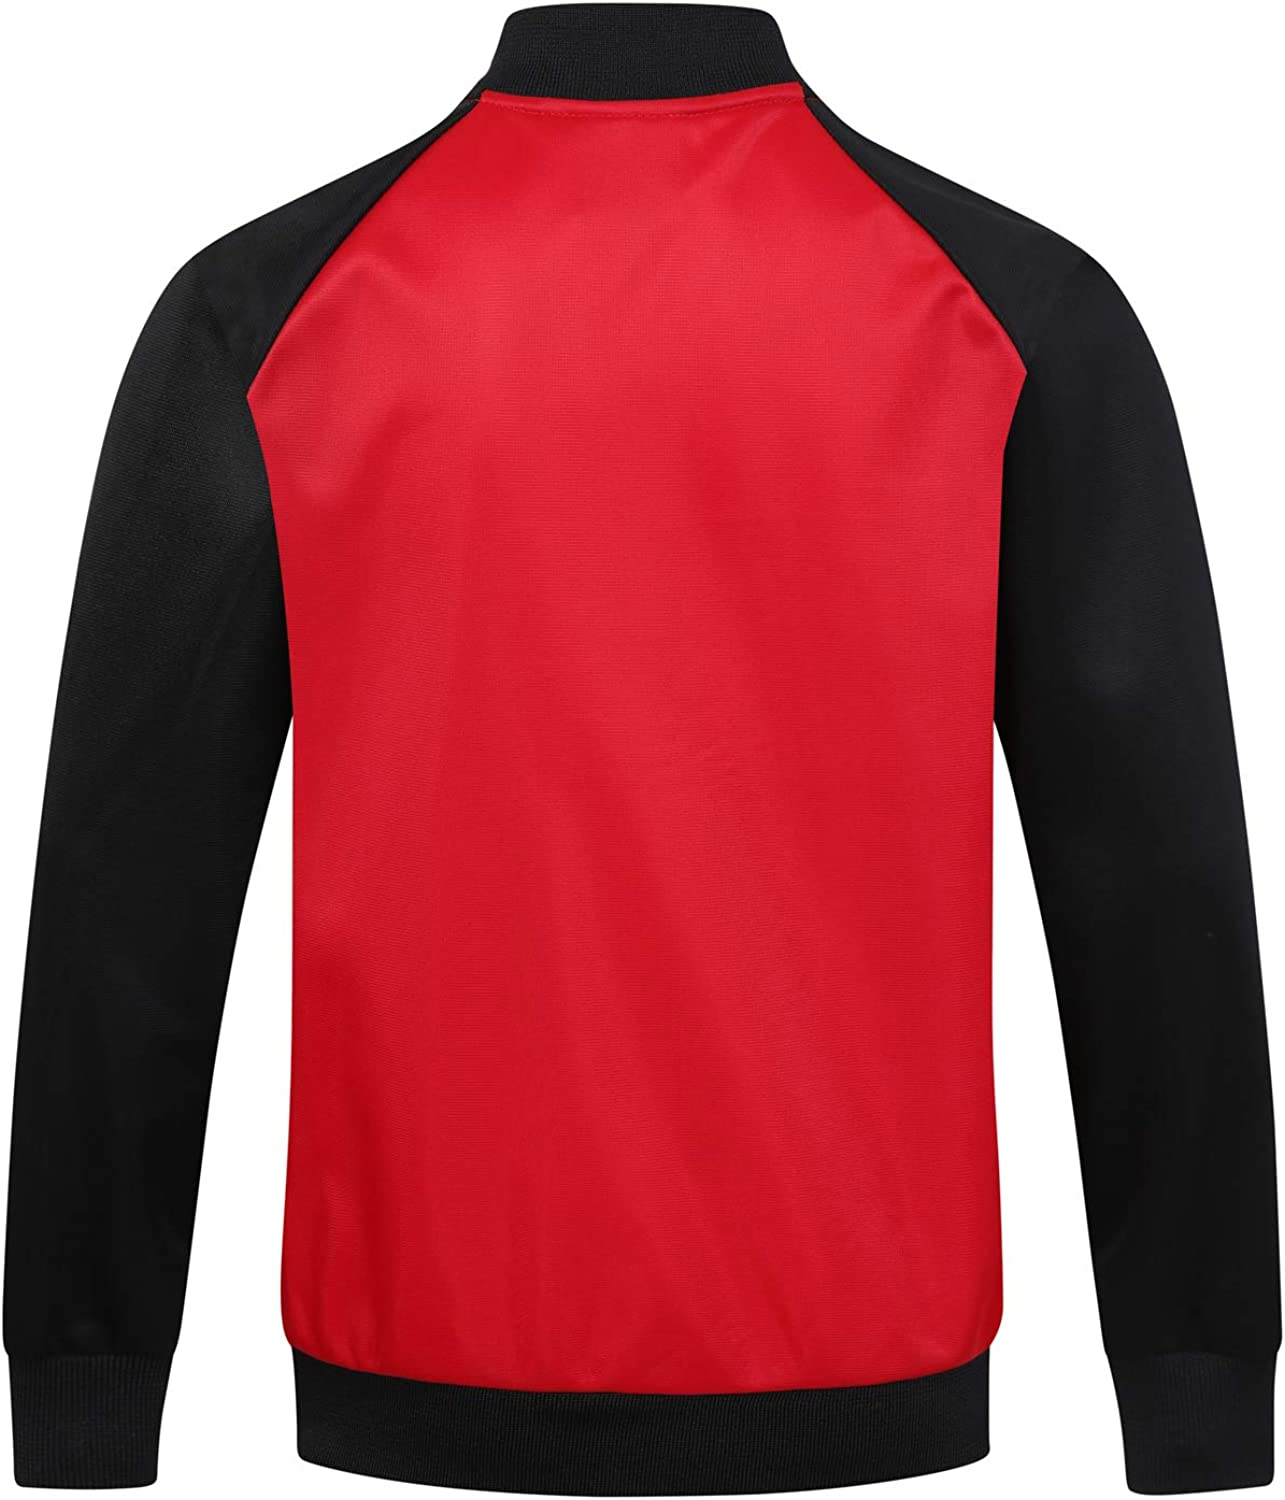 Nottingham Forest FC Official Football Gift Boys Retro Track Top Jacket